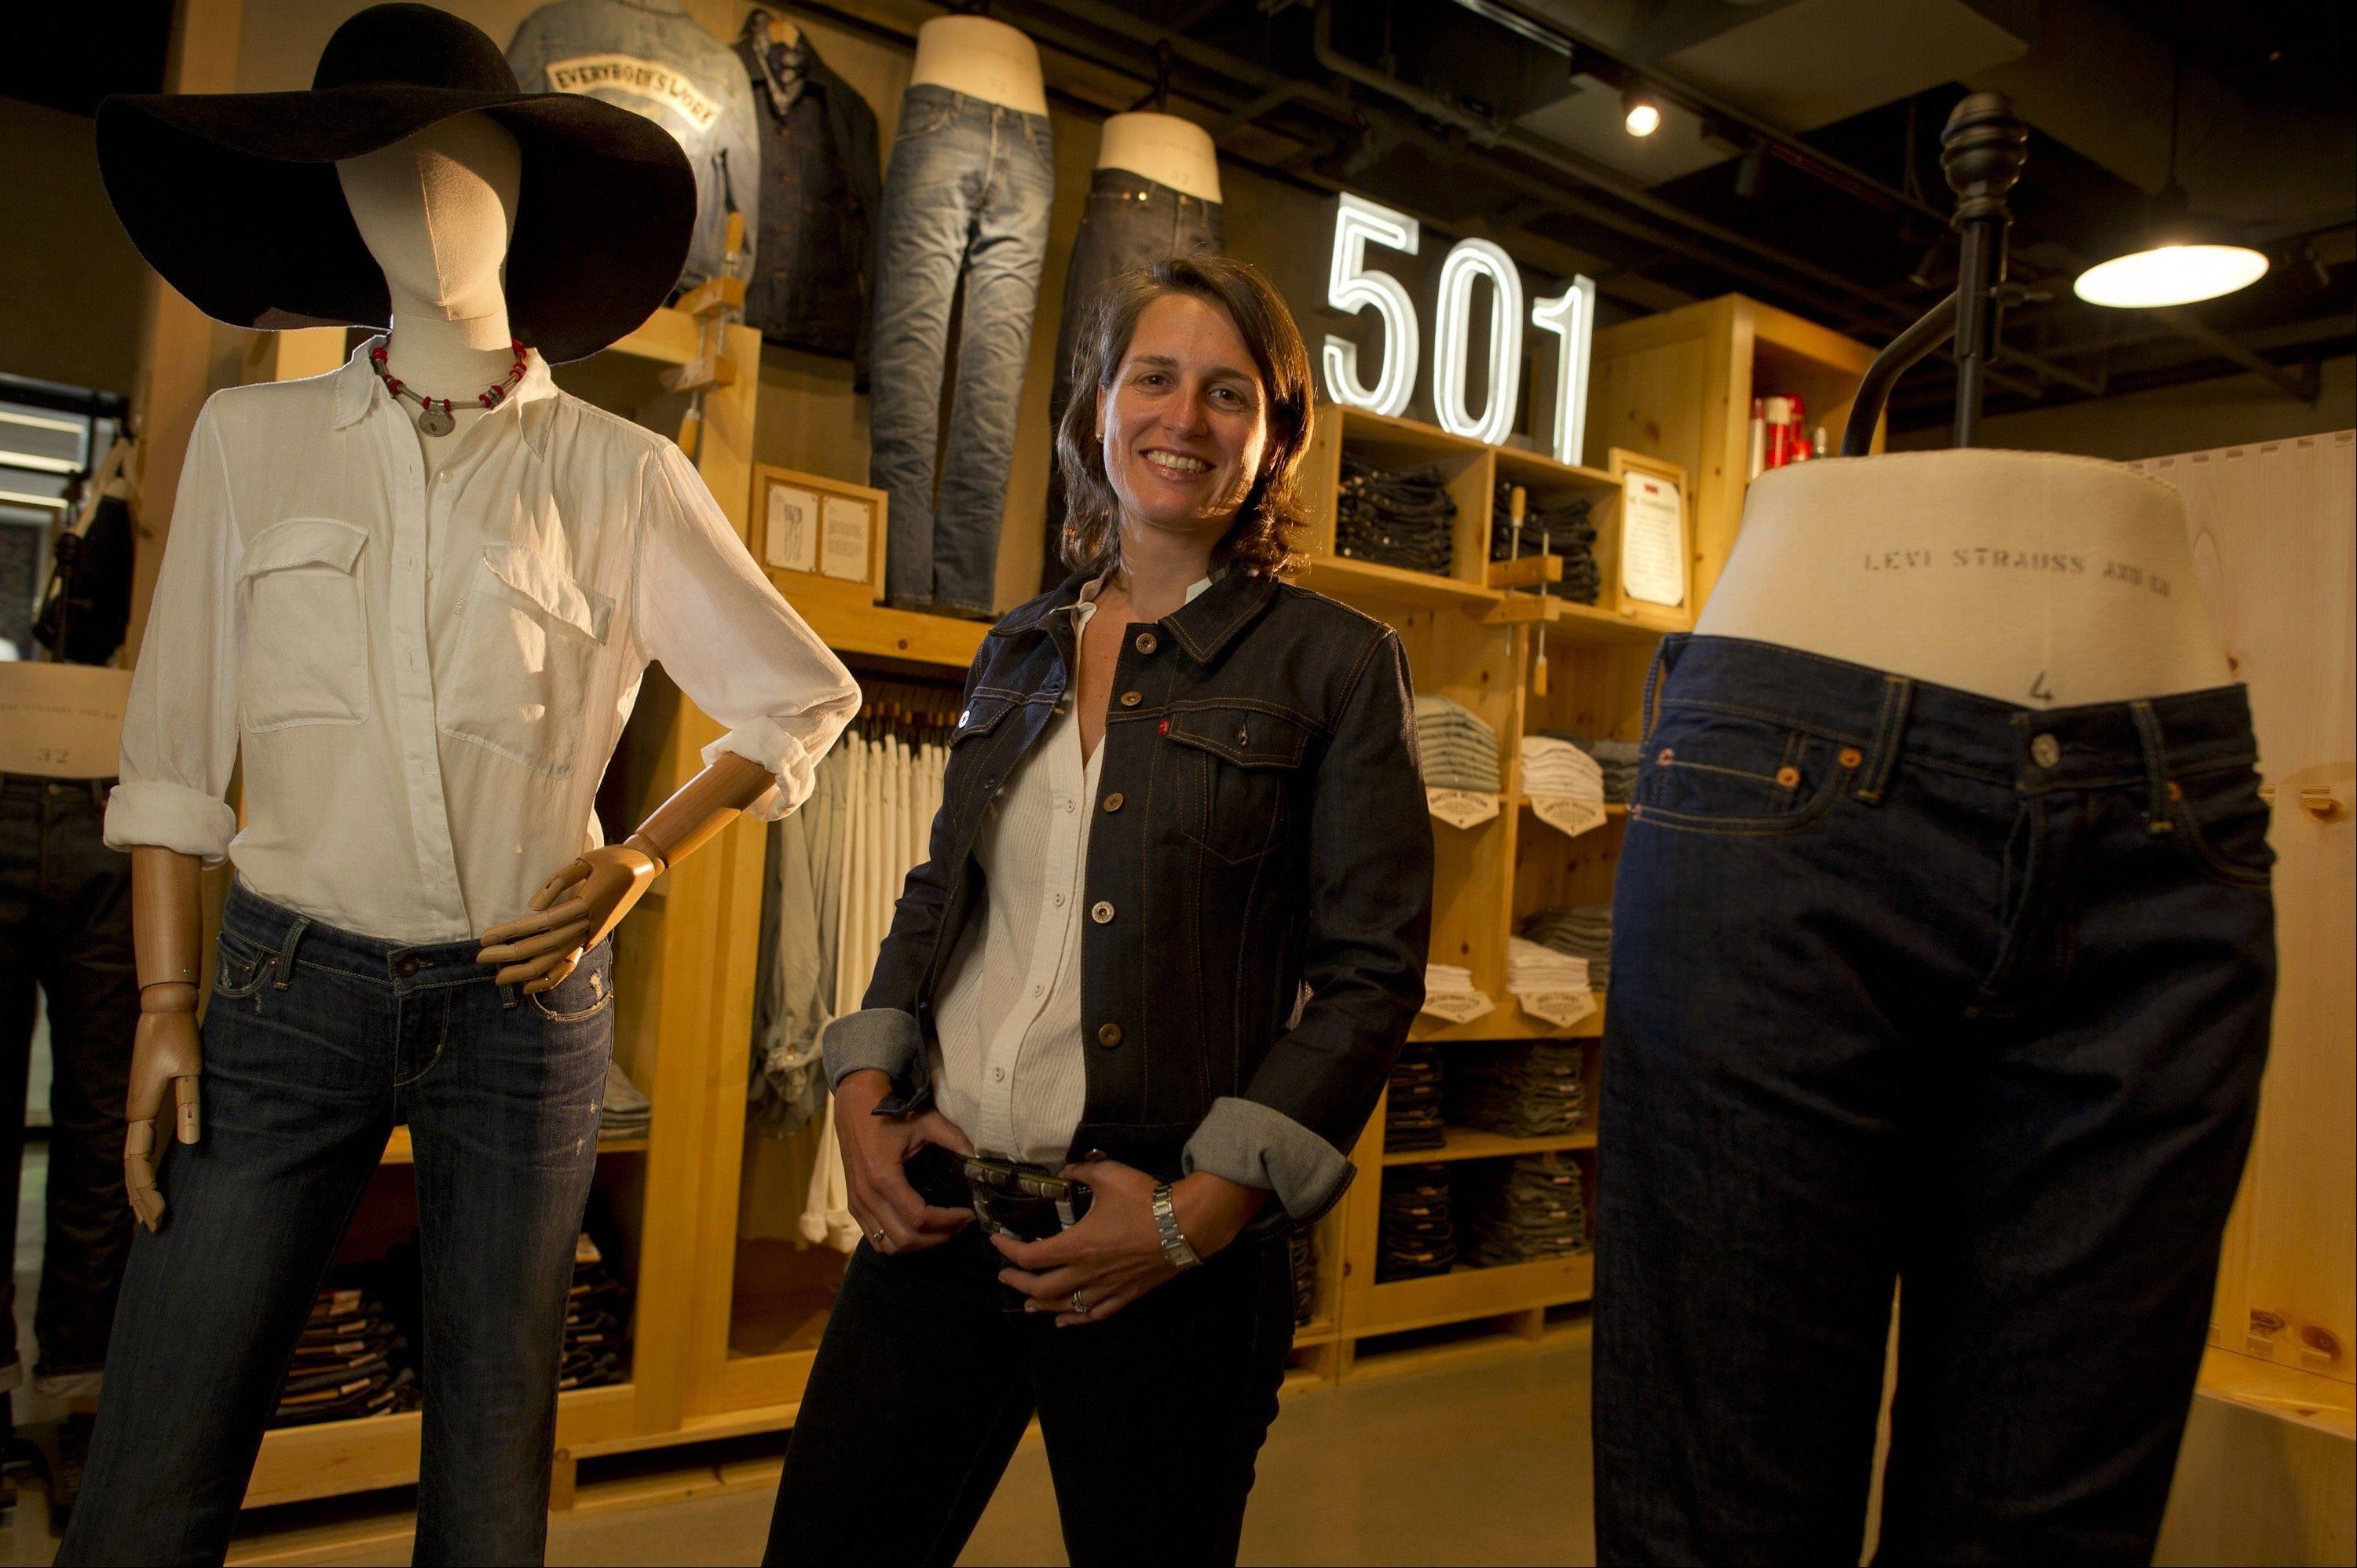 Rebecca Van Dyck�s hiring at Levi Strauss & Co. is part of an overhaul that includes new leadership, a shift in management structure to eliminate regional control over design and a reduction in how many products are released each year.